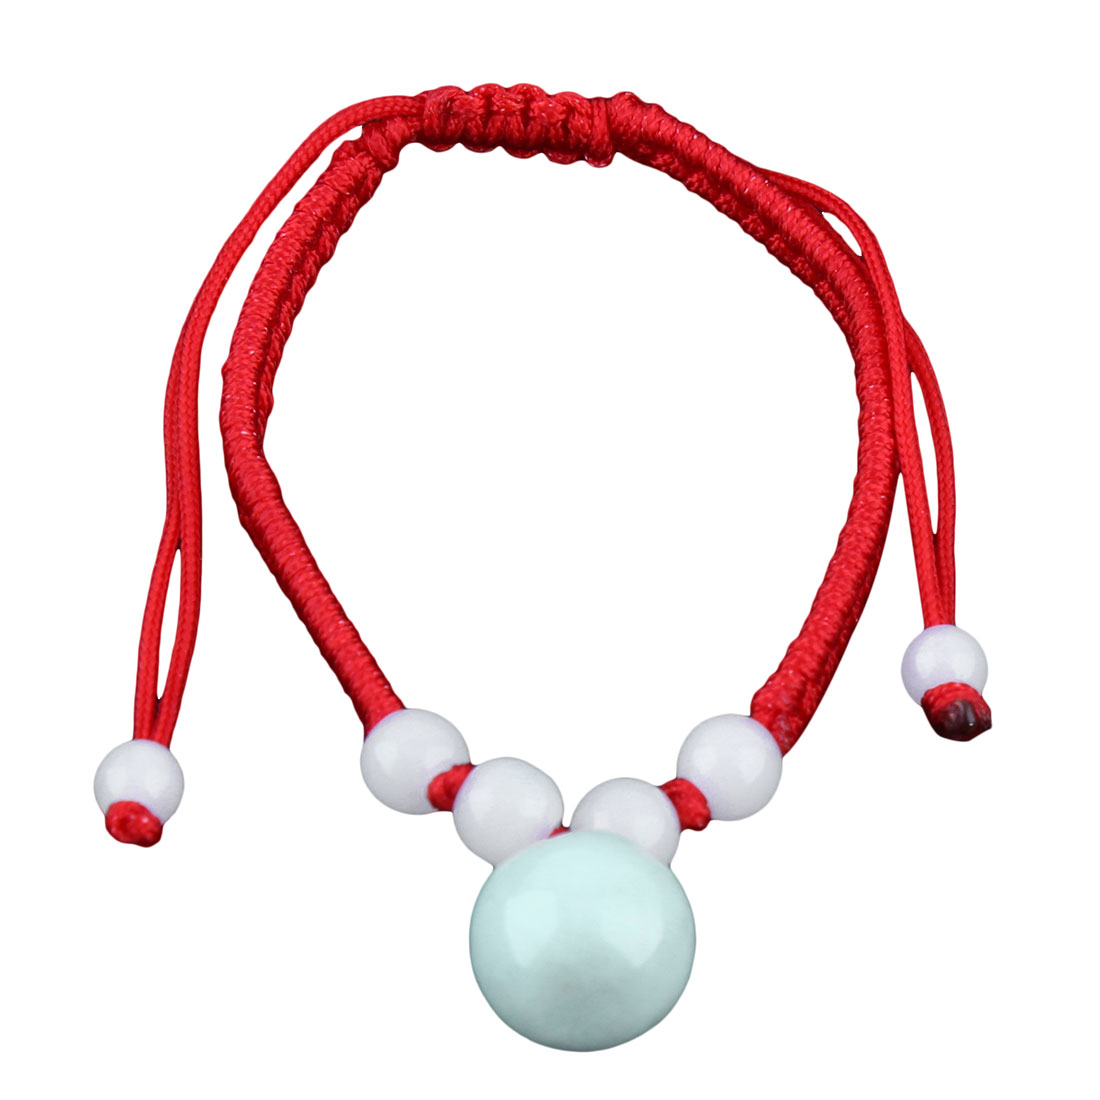 Lady Handmade Braided Rope Plastic Beads Decor String Wrist Bracelet Red